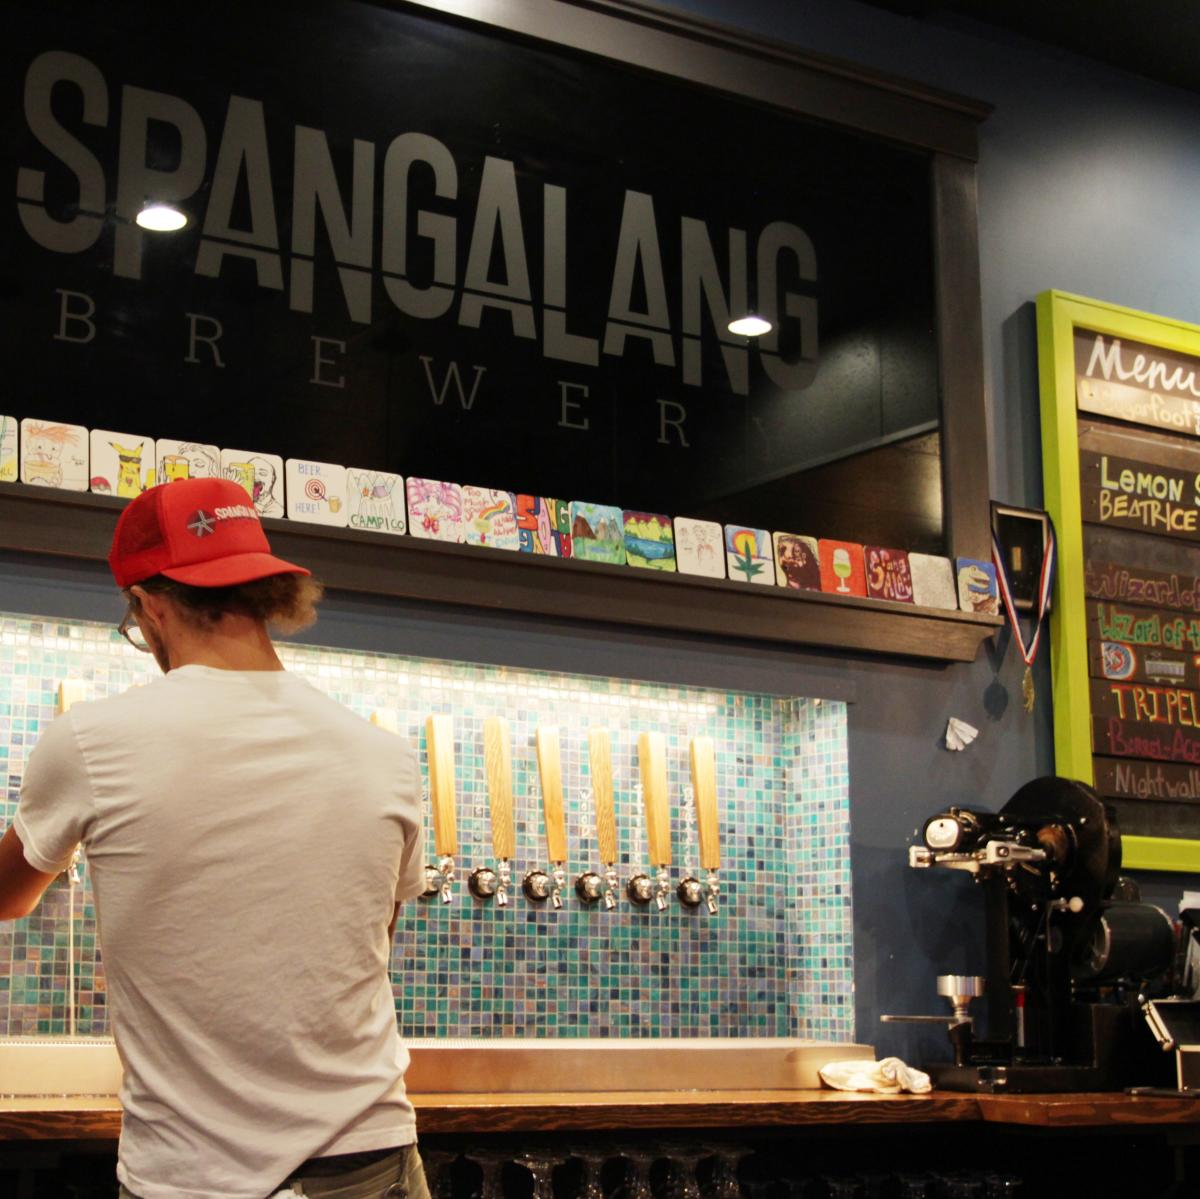 Copy of spangalang-brewery-tap-room